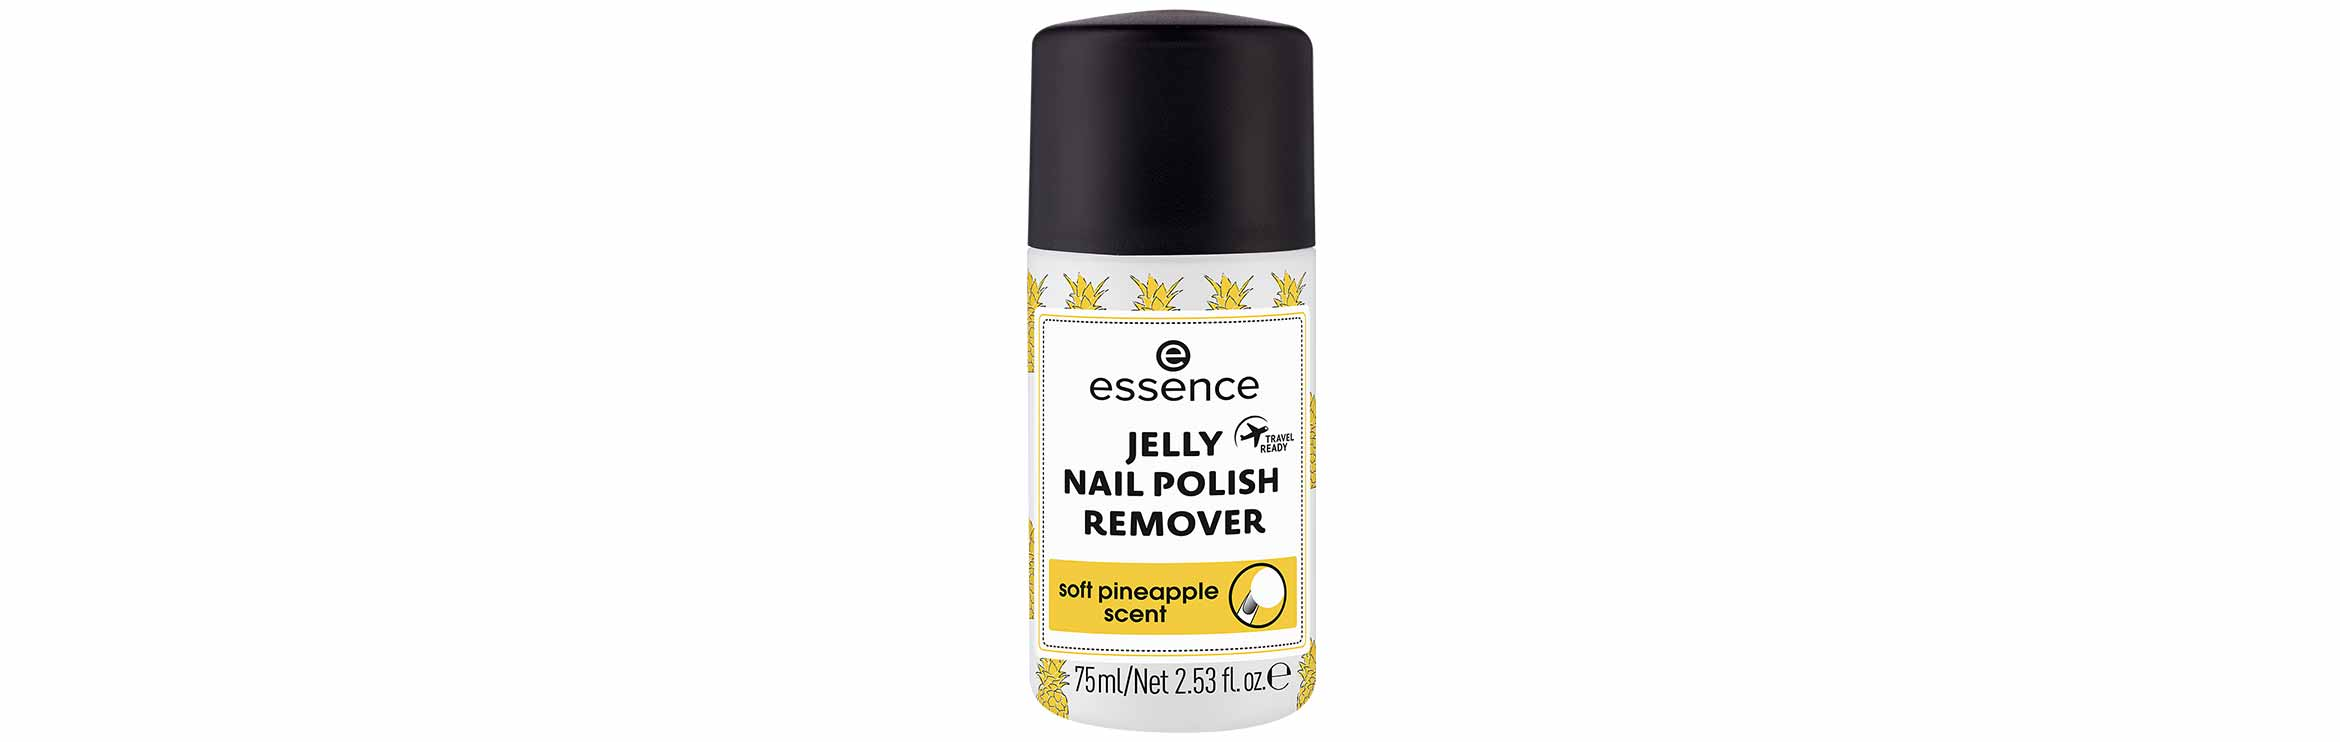 essence-jelly-nail-polish-remover